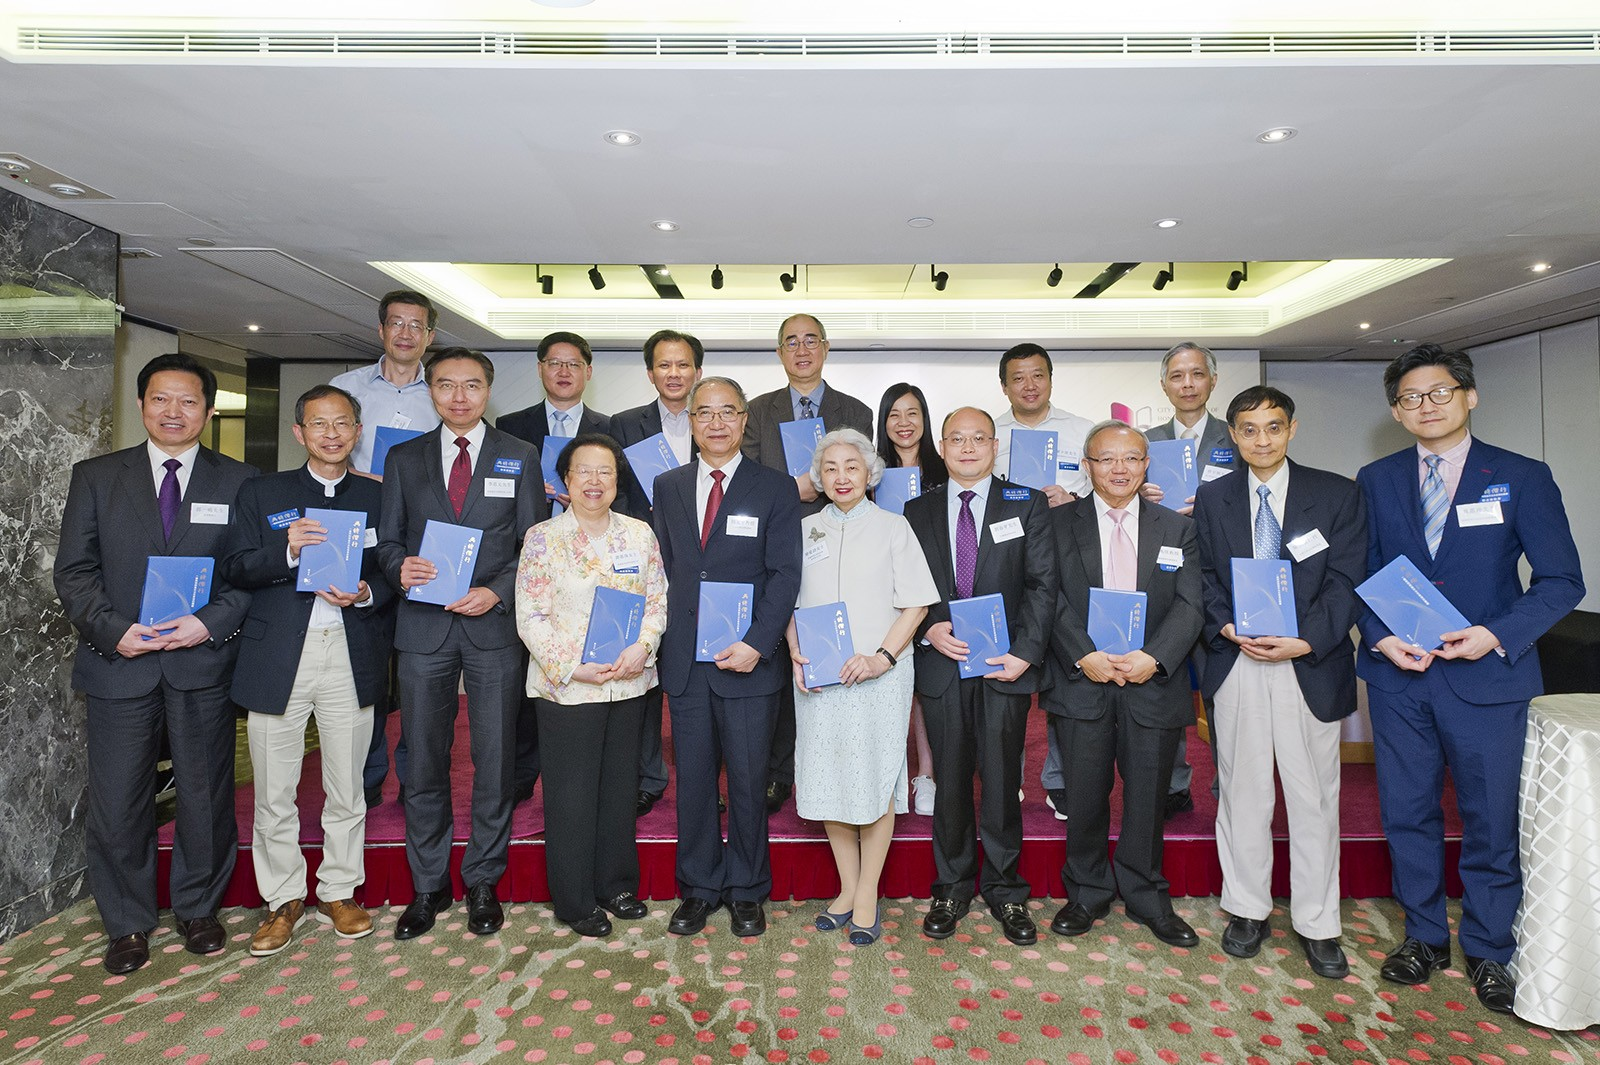 A launching ceremony for Advancing with the Times: Implementation of the One Country, Two Systems Policy and Basic Law in Hong Kong